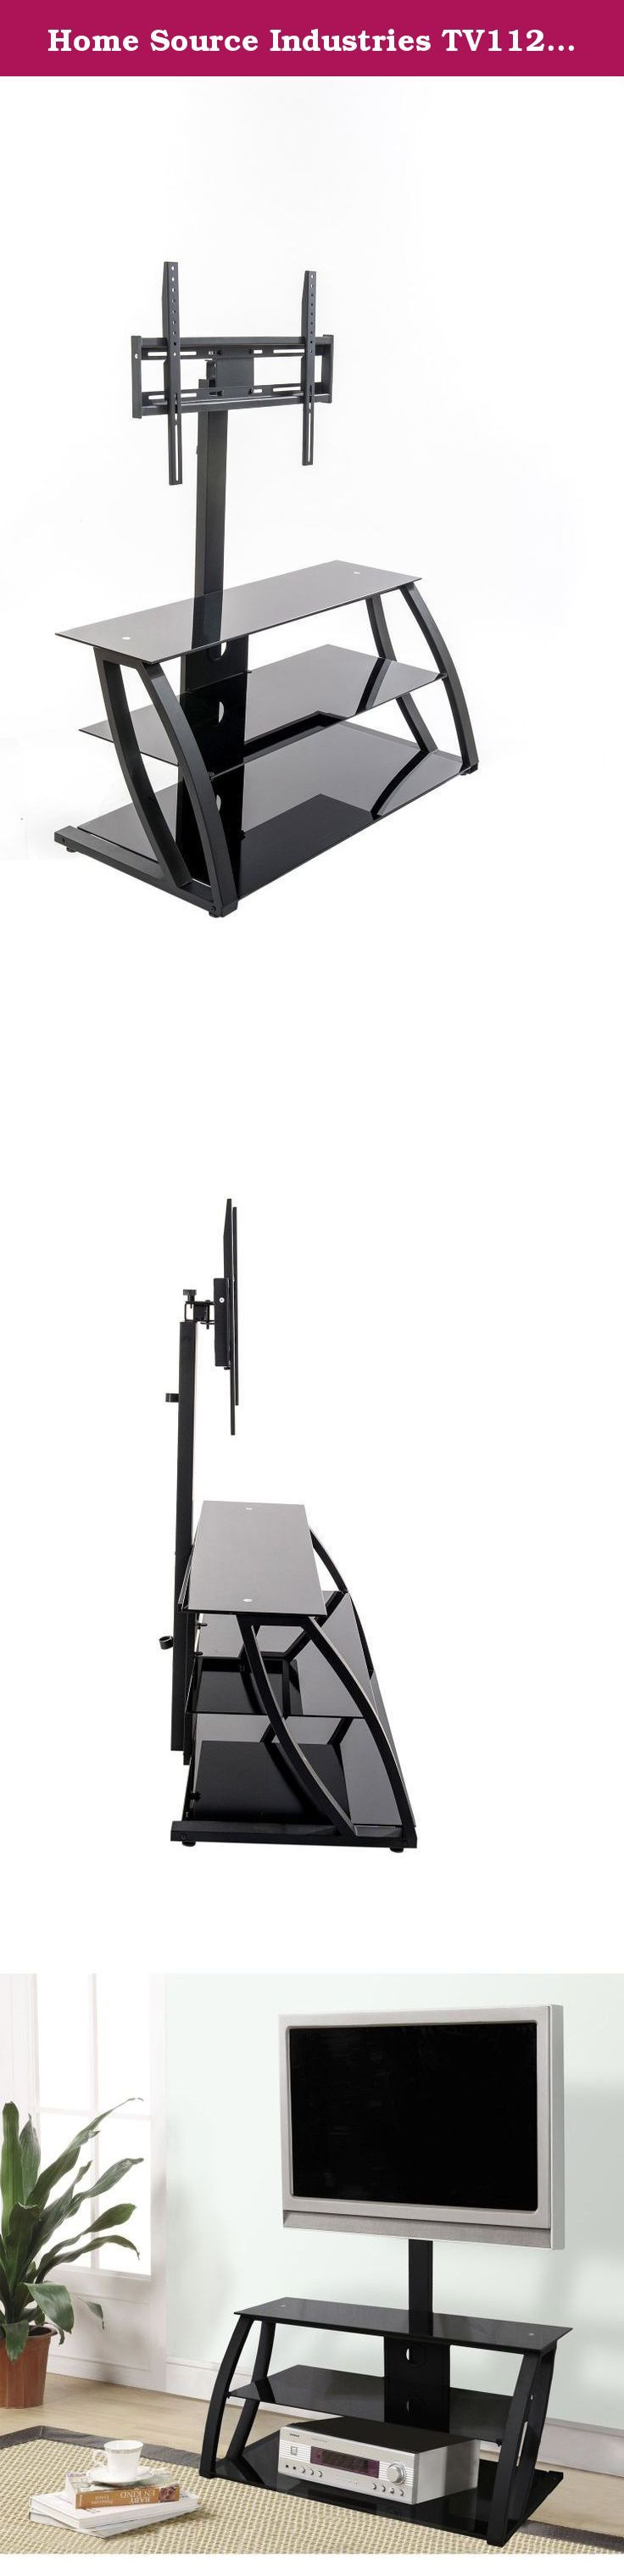 """Home Source Industries TV11235 Modern TV Stand with Mount and Shelving for Components, Black. With this TV Stand, you can finally display your flat-panel plasma or LCD television in style. Designed to accommodate televisions up to 55"""", the TV stand features a strong metal mount and an open design. The three shelving units complement a modern home decor, and they also allow for the storage and display of various entertainment accessories."""